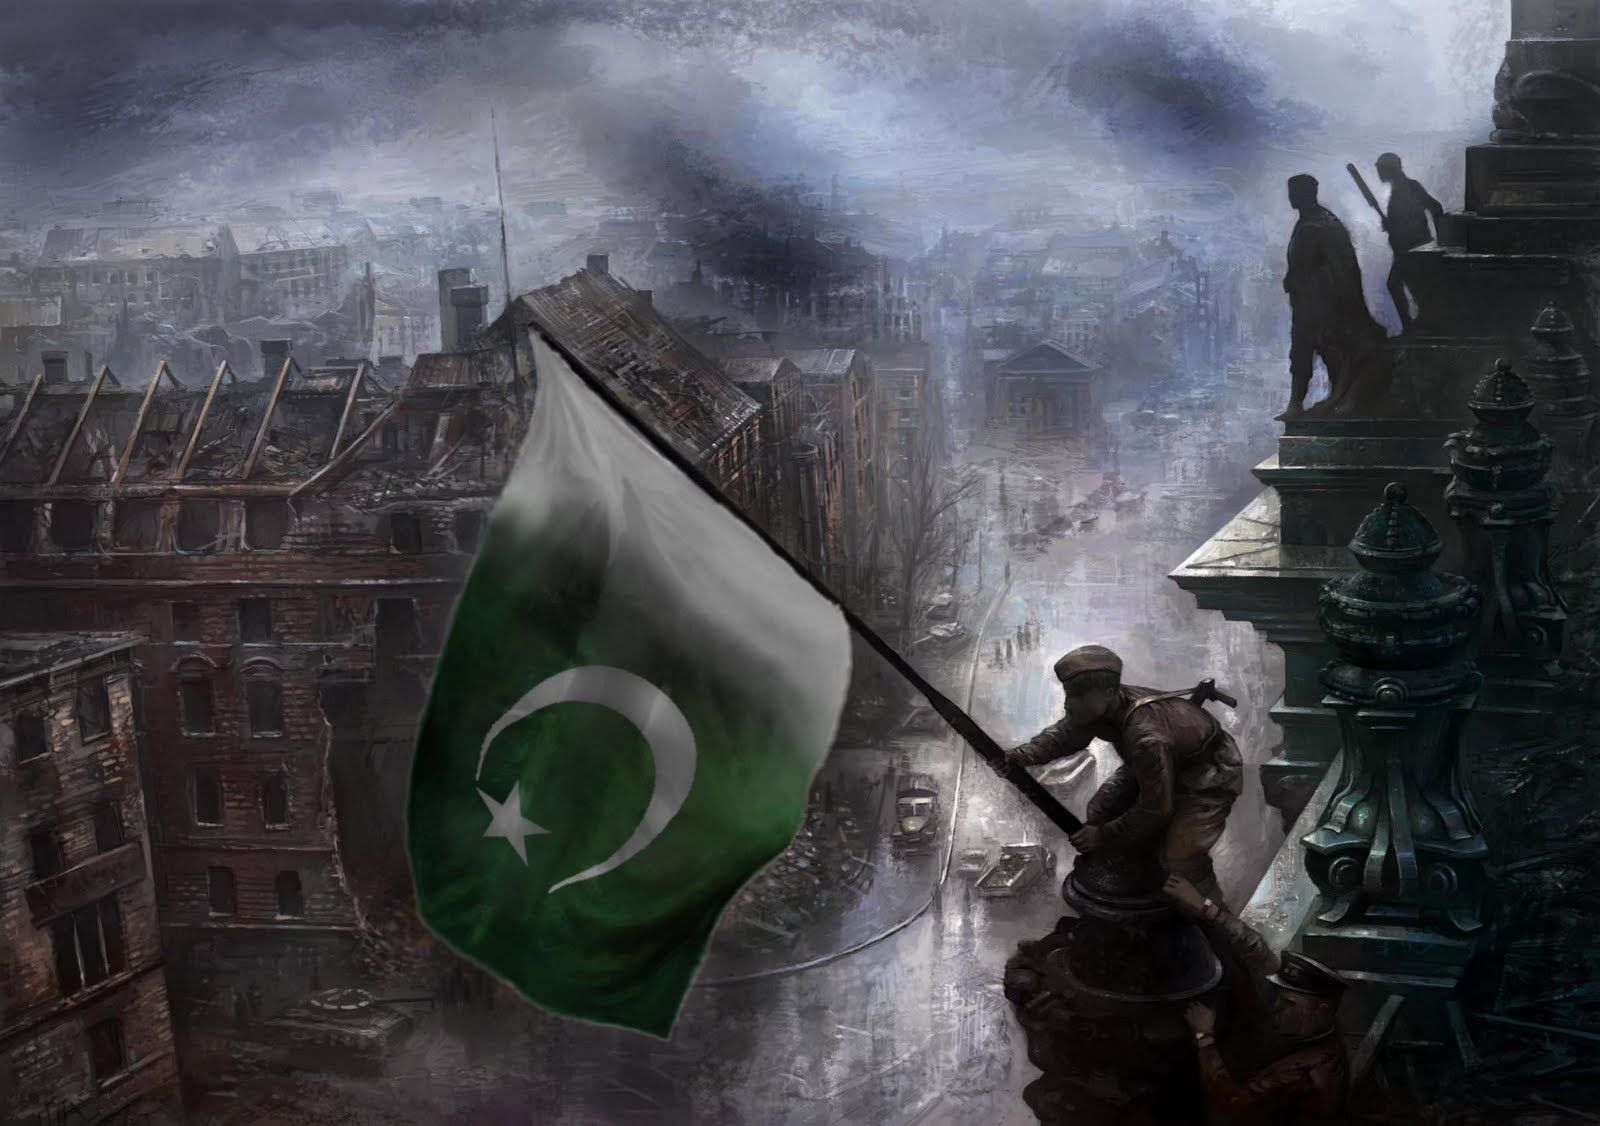 pakistan wallpapers hd wallpapers pulse | hd wallpapers | pinterest